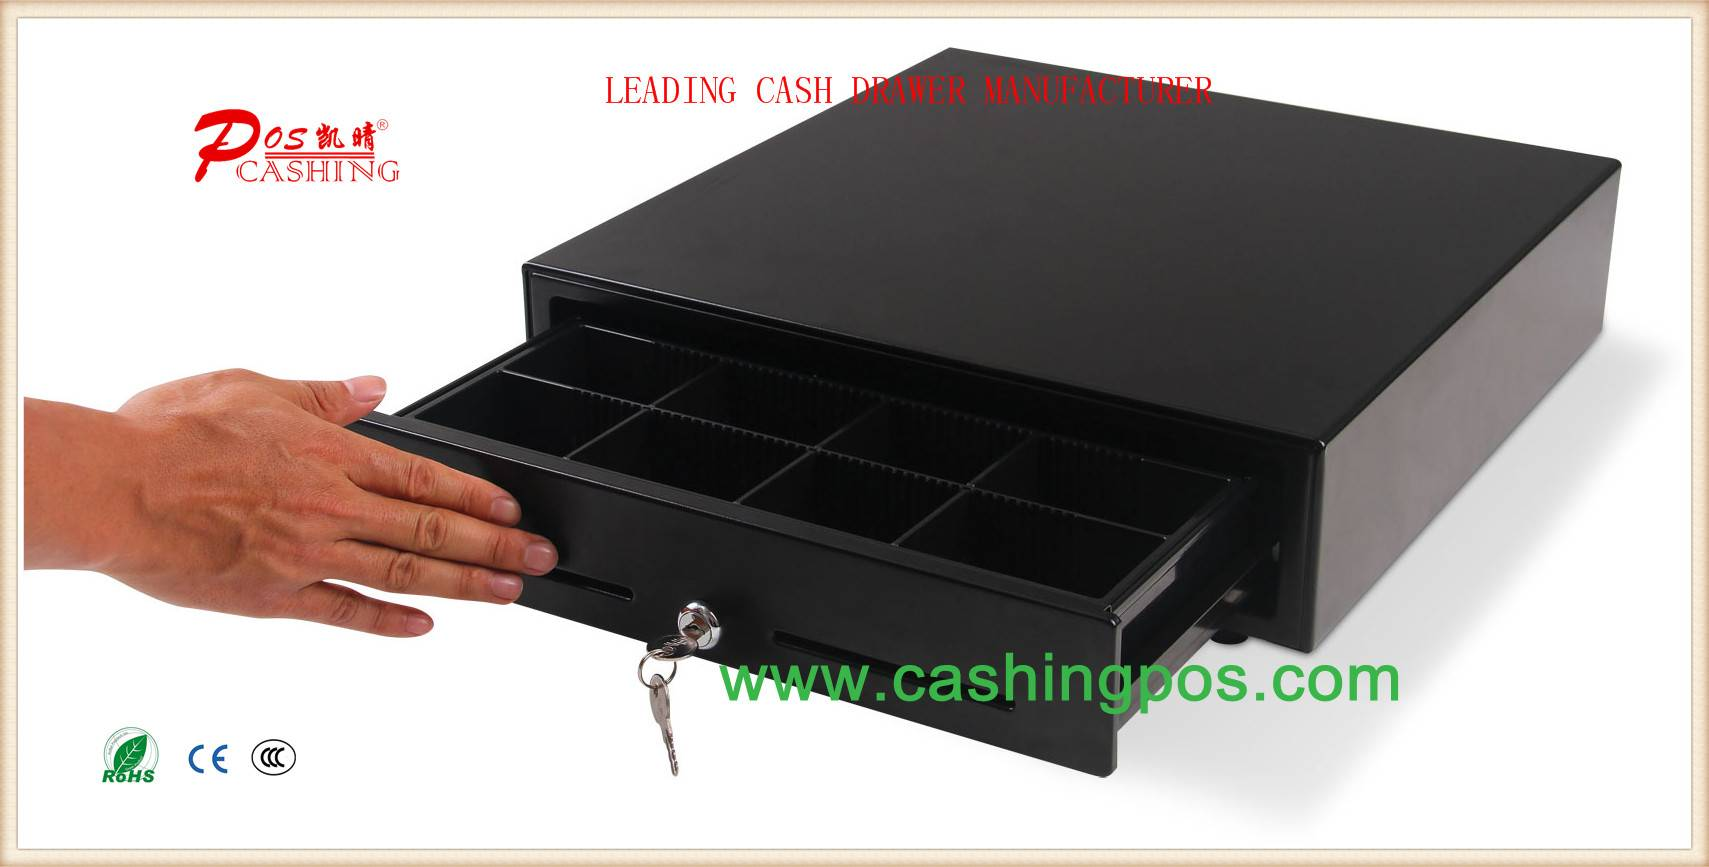 QT-410 Touch Cash Drawer